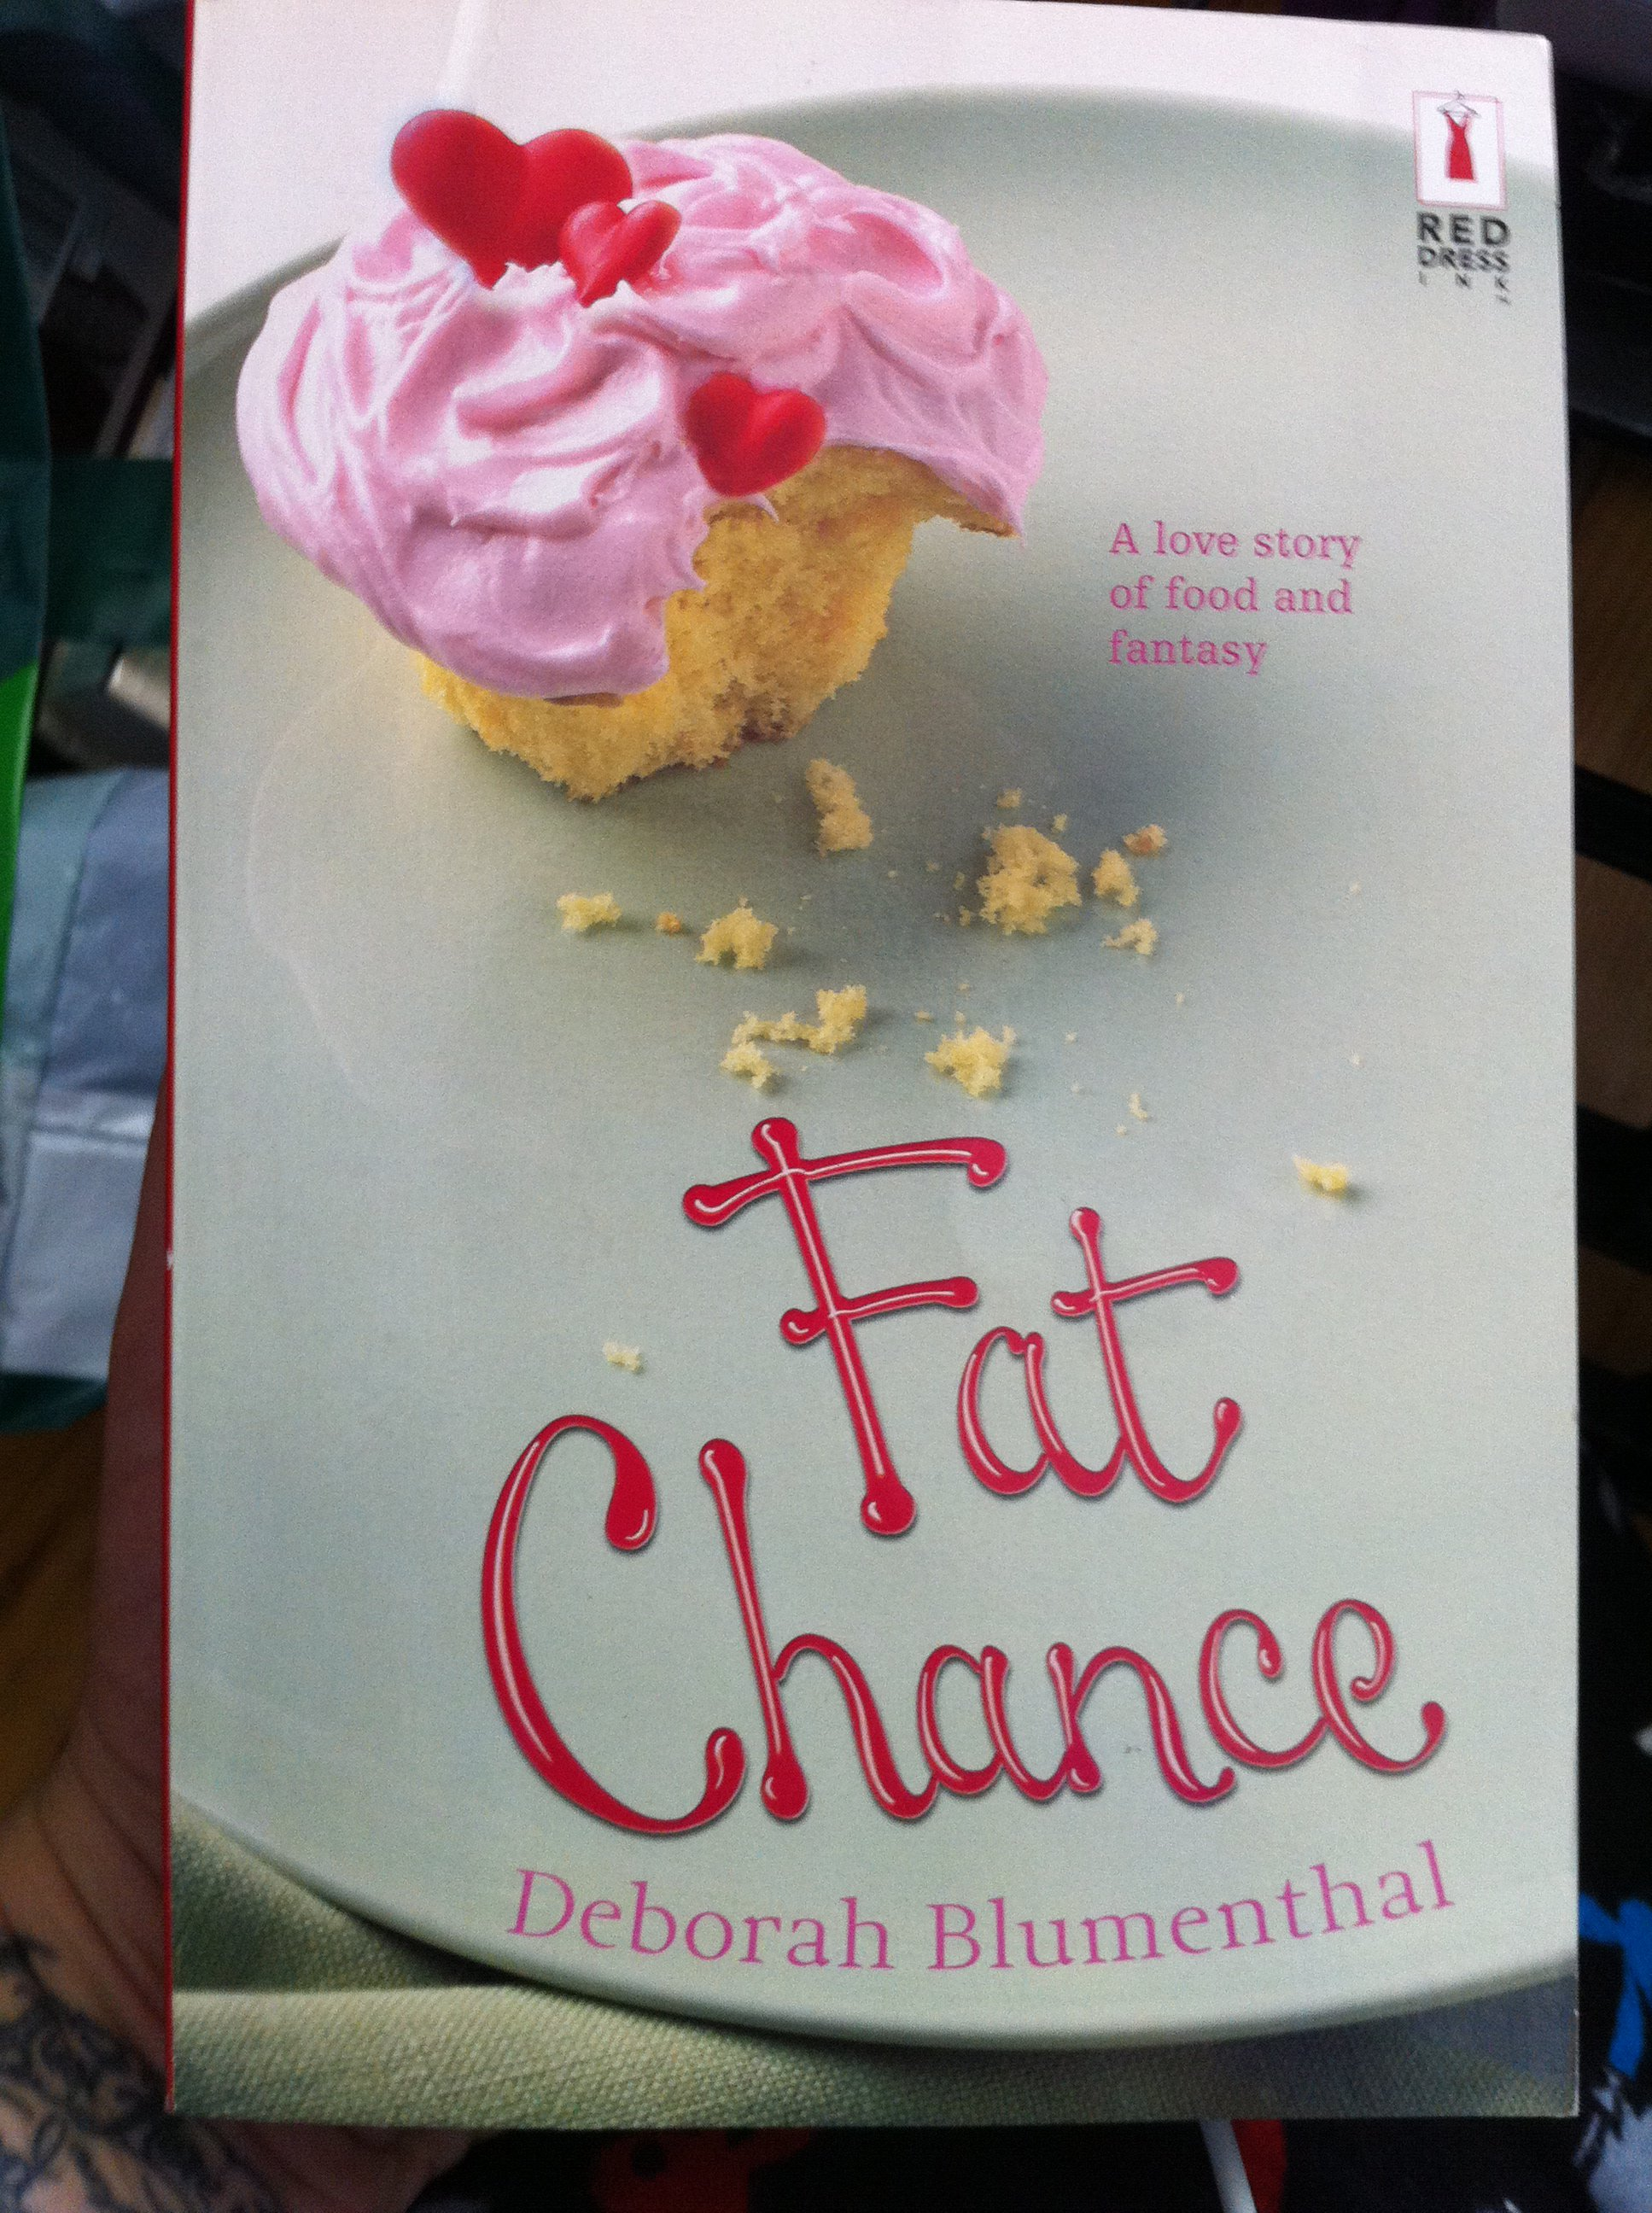 FOR SALE: Fat Chance, A love story of food and fantasy!